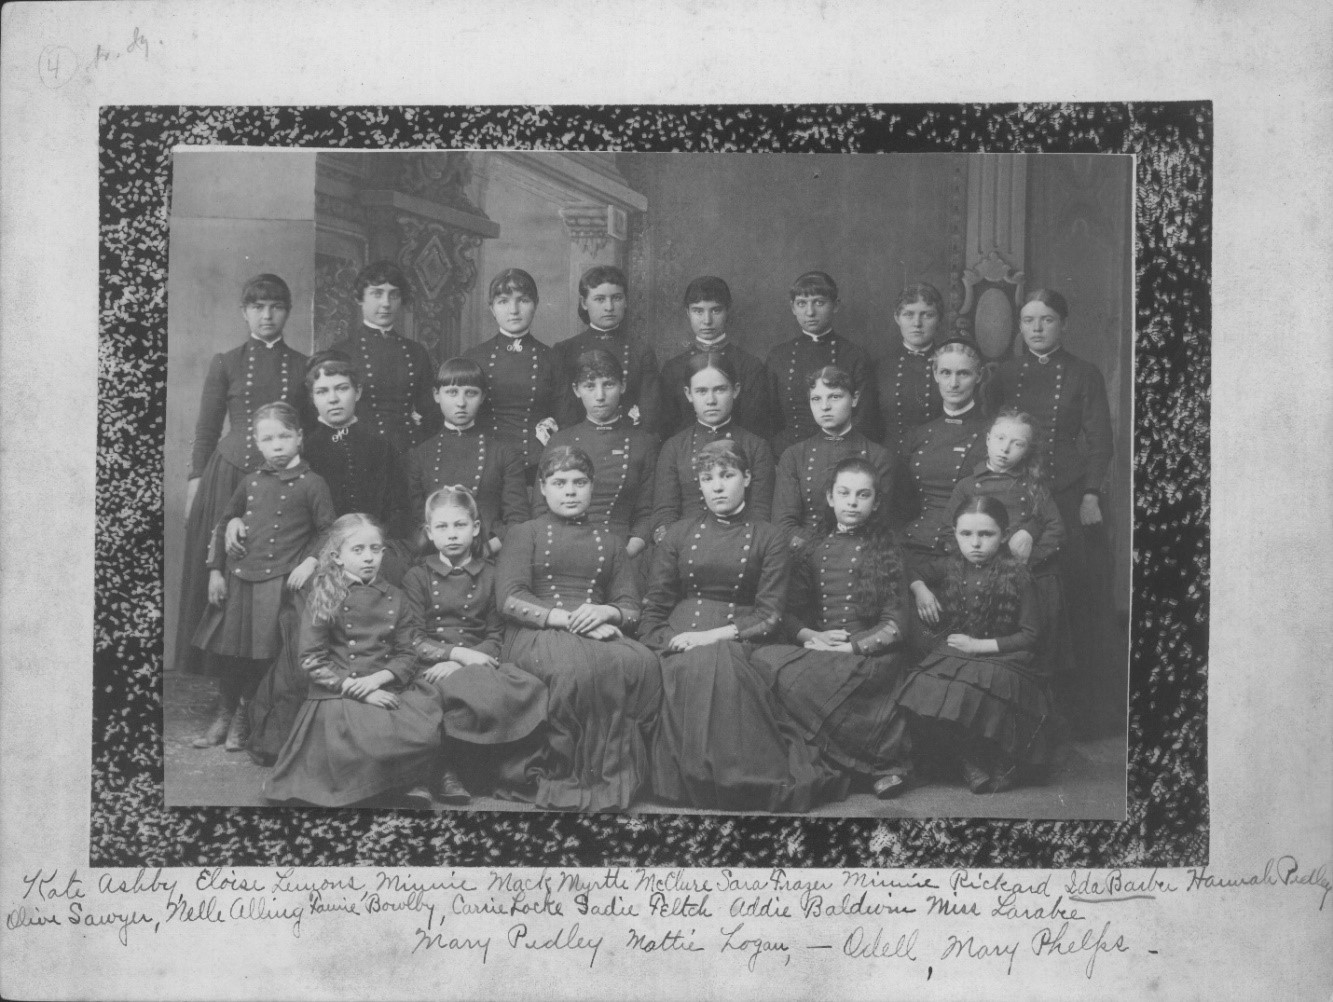 A grayscale cabinet photograph of a group of young girls and teachers in cadet uniforms of the Colorado Collegiate and Military Institute.  The girls are identified: Kate Ashby, Eloise L. Lemons, Minne Mack, Myrtle McClure, Sara Frazer, Minnie Rickard, Ida Barber, Hannah Pedley, Olive Sawyer, Nellie Alling, Fannie Bowlby, Carrie Locke, Sadie Felch, Addie Baldwin, Miss Larabie, Mary Pedley, Mattie Logan, ? Odell, and Mary Phelps, plus three other unidentified girls, 1885. Object ID: 1954.012.005; Copyright Royal Gorge Regional Museum & History Center